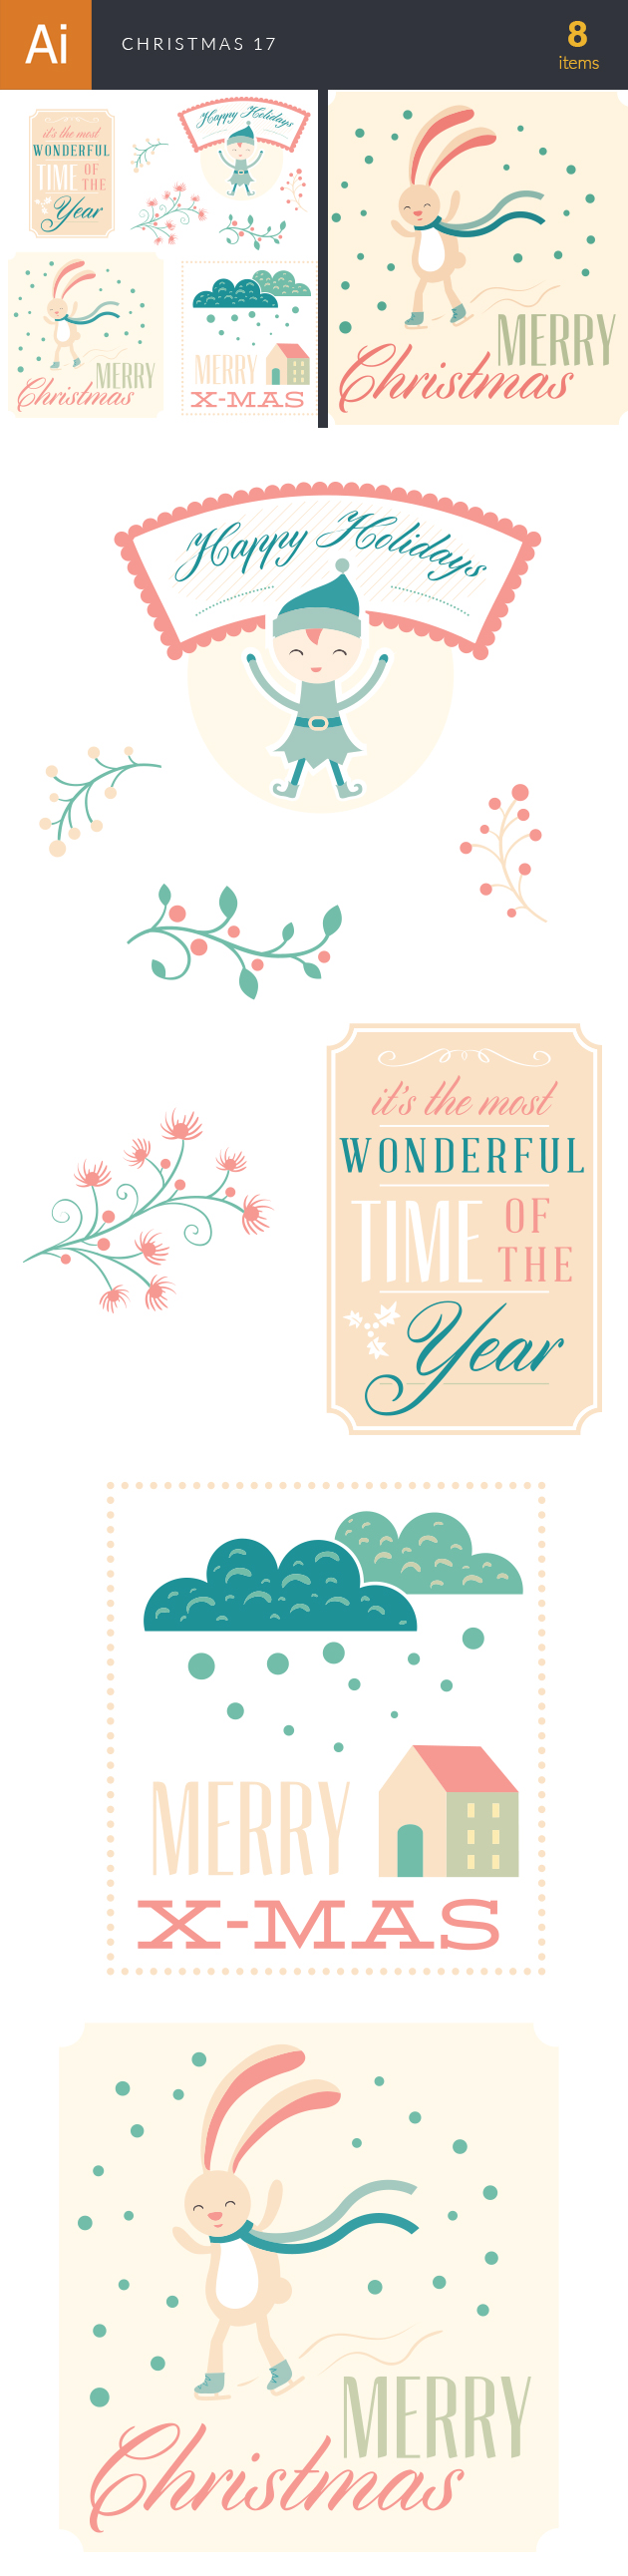 Christmas Vector Set 17 designtnt christmas vector set 17 vector large